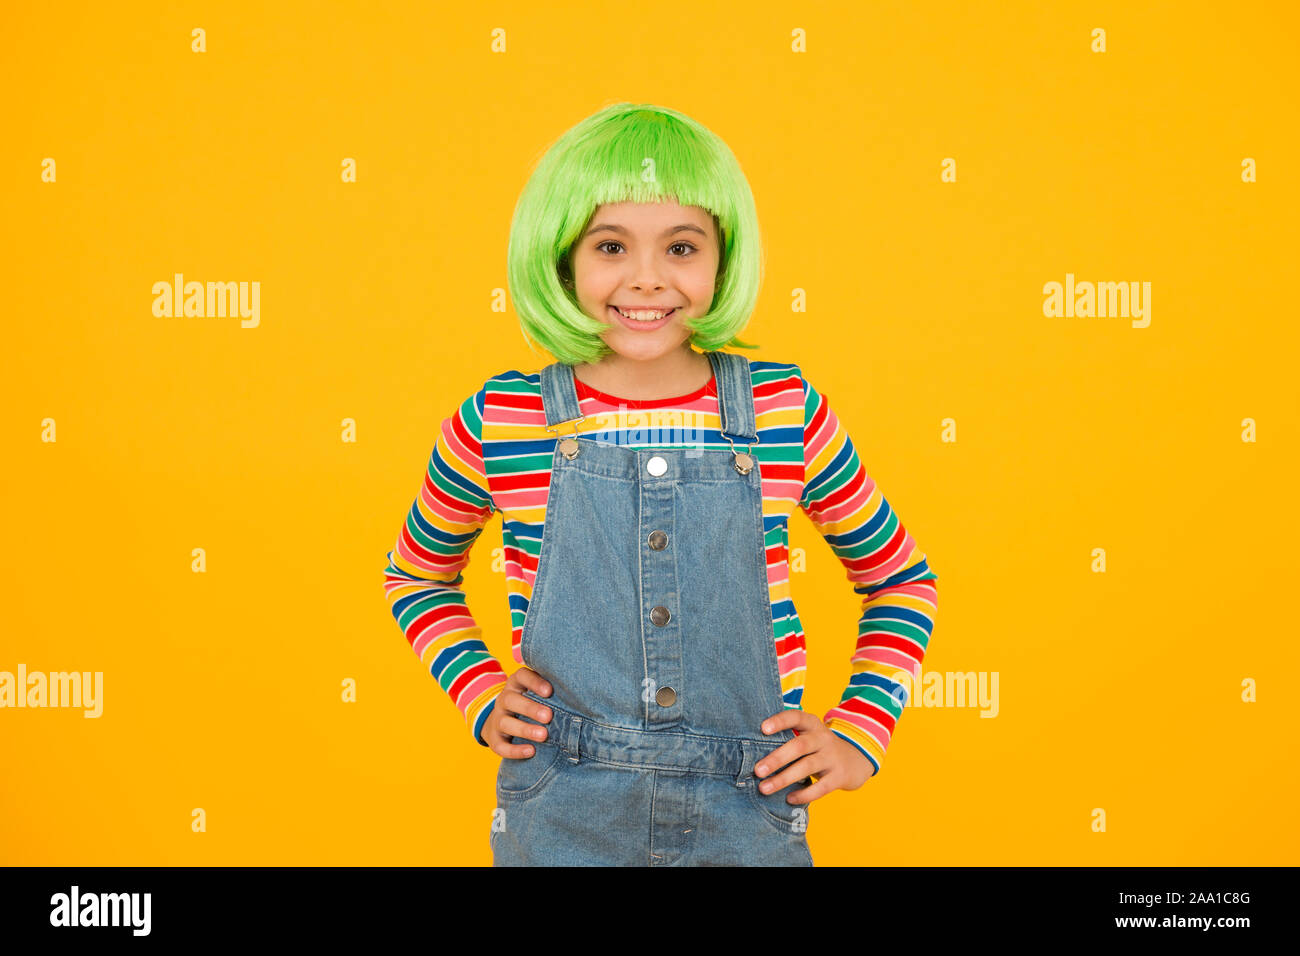 Appeal To Her Creative Style Happy Girl Wear Short Hair Style Wig Yellow Background Little Child Smile In Casual Fashion Style Fancy Style And Fashion Beauty Look Hair Salon Stock Photo